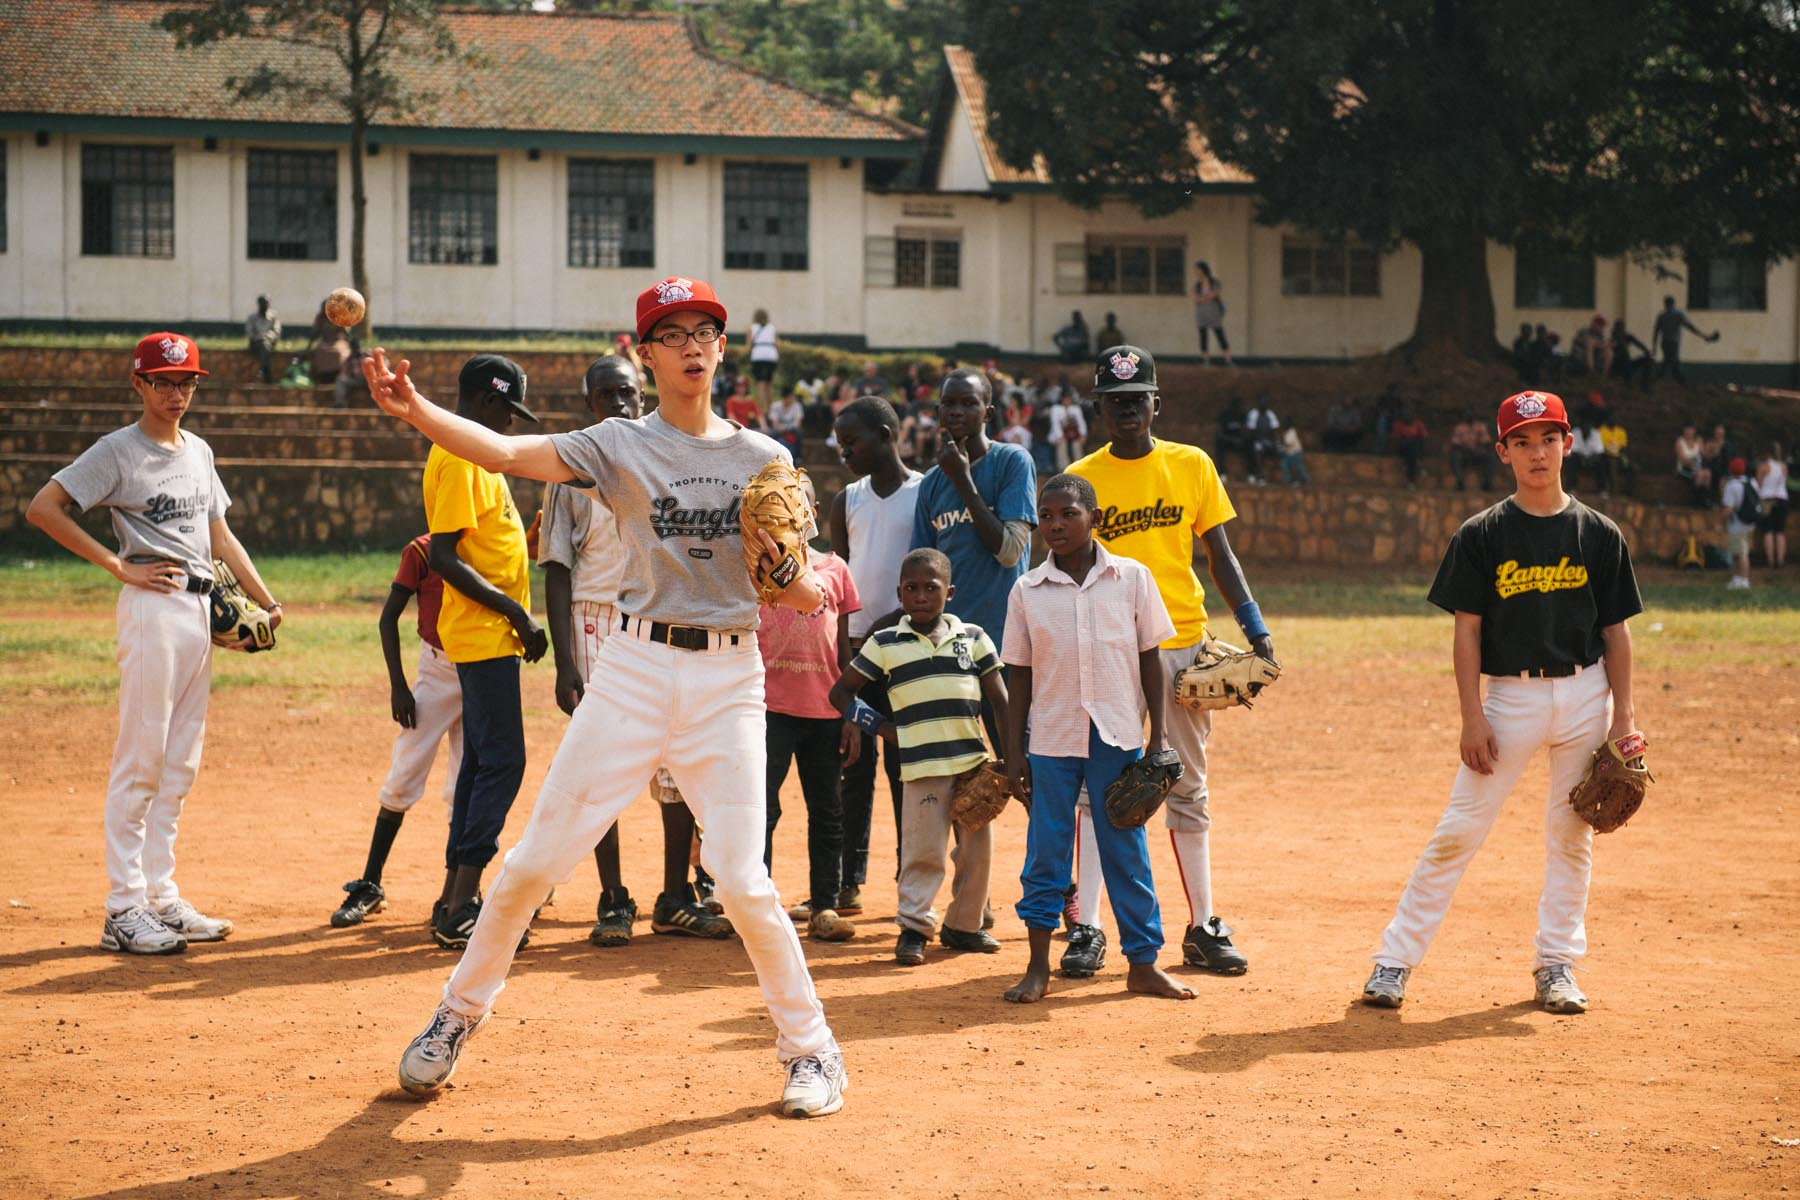 HKP-UgandaBaseball-Day3-9806.jpg